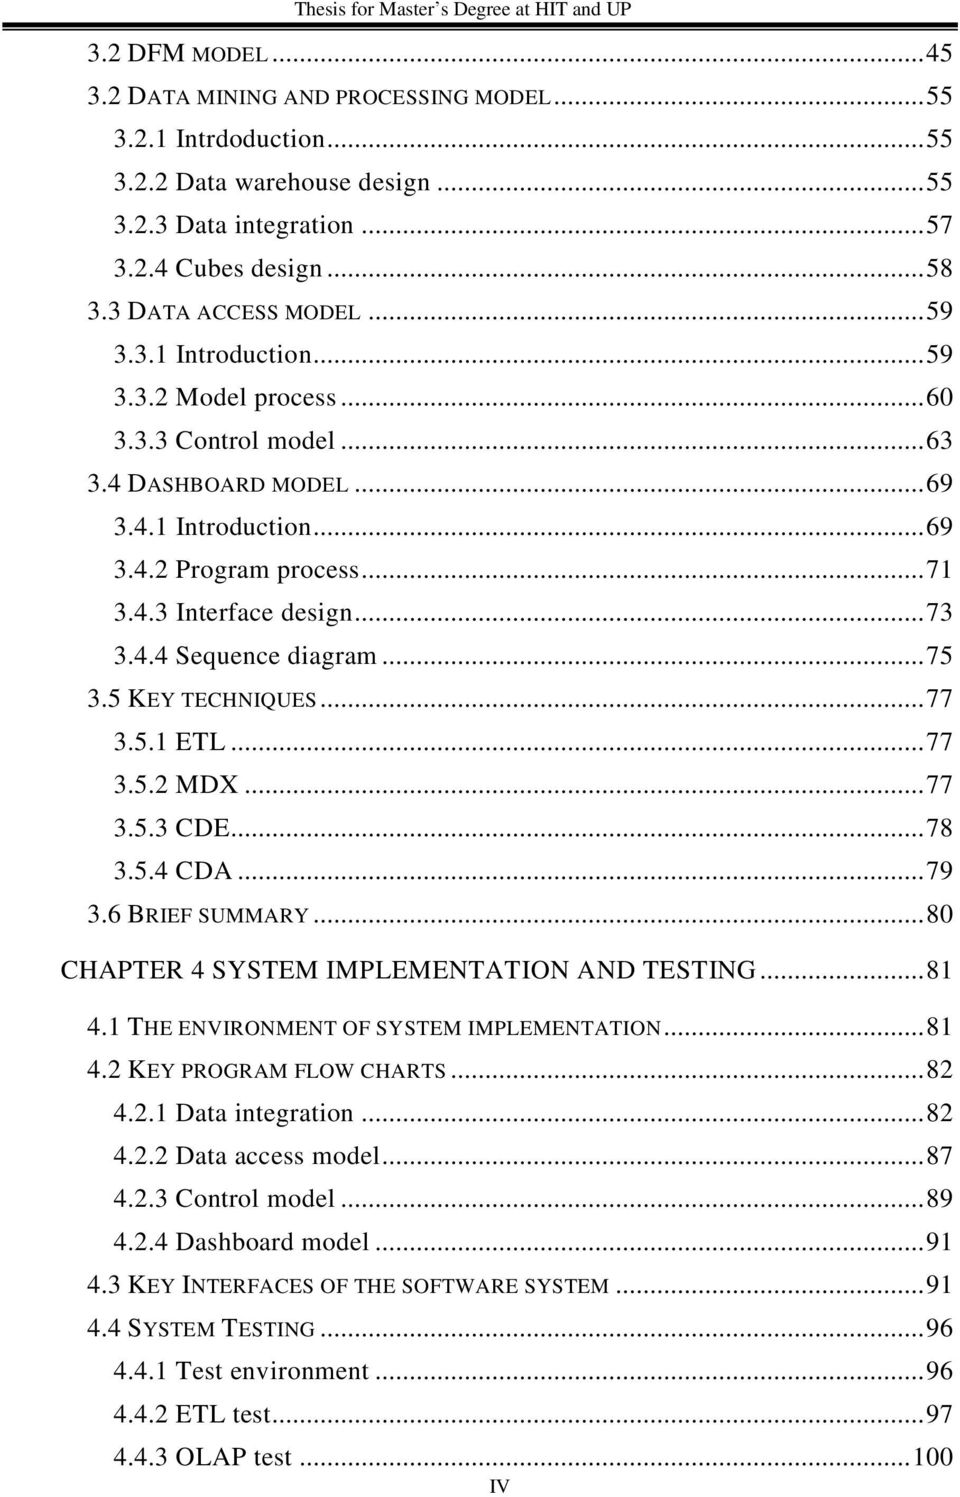 .. 75 3.5 KEY TECHNIQUES... 77 3.5.1 ETL... 77 3.5.2 MDX... 77 3.5.3 CDE... 78 3.5.4 CDA... 79 3.6 BRIEF SUMMARY... 80 CHAPTER 4 SYSTEM IMPLEMENTATION AND TESTING... 81 4.